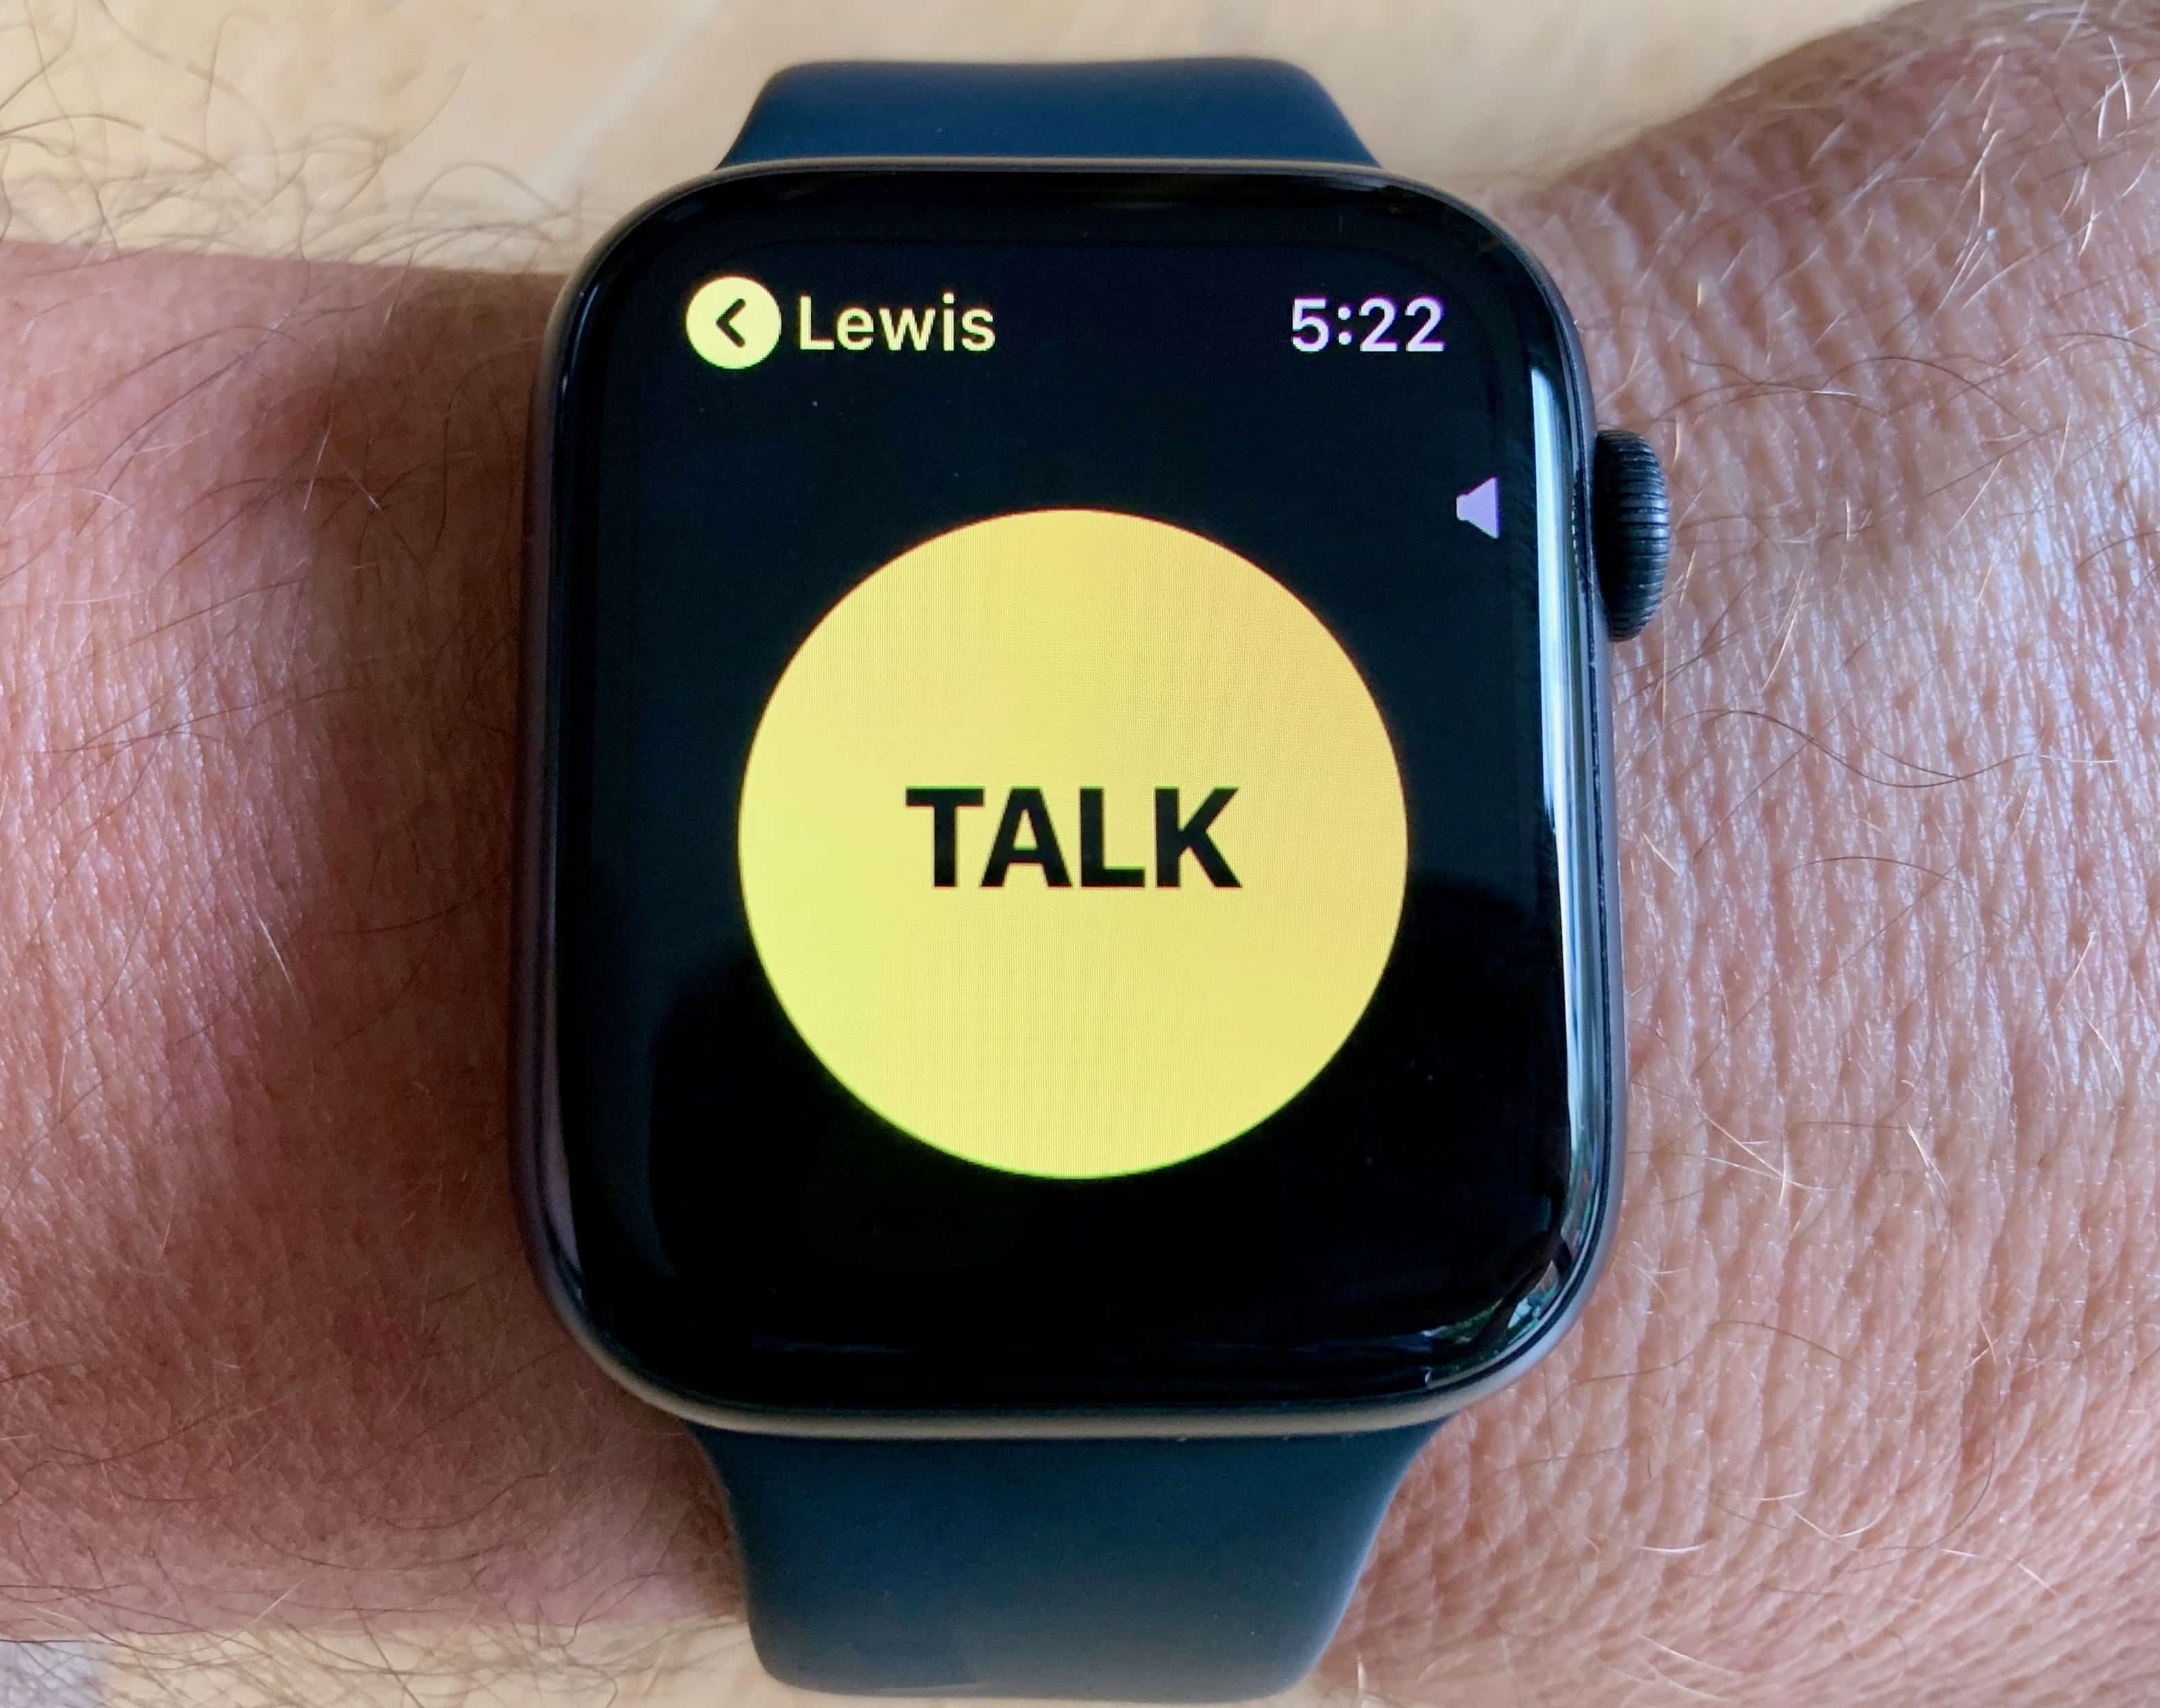 Apple Watch Series 4 Walkie Talkie App